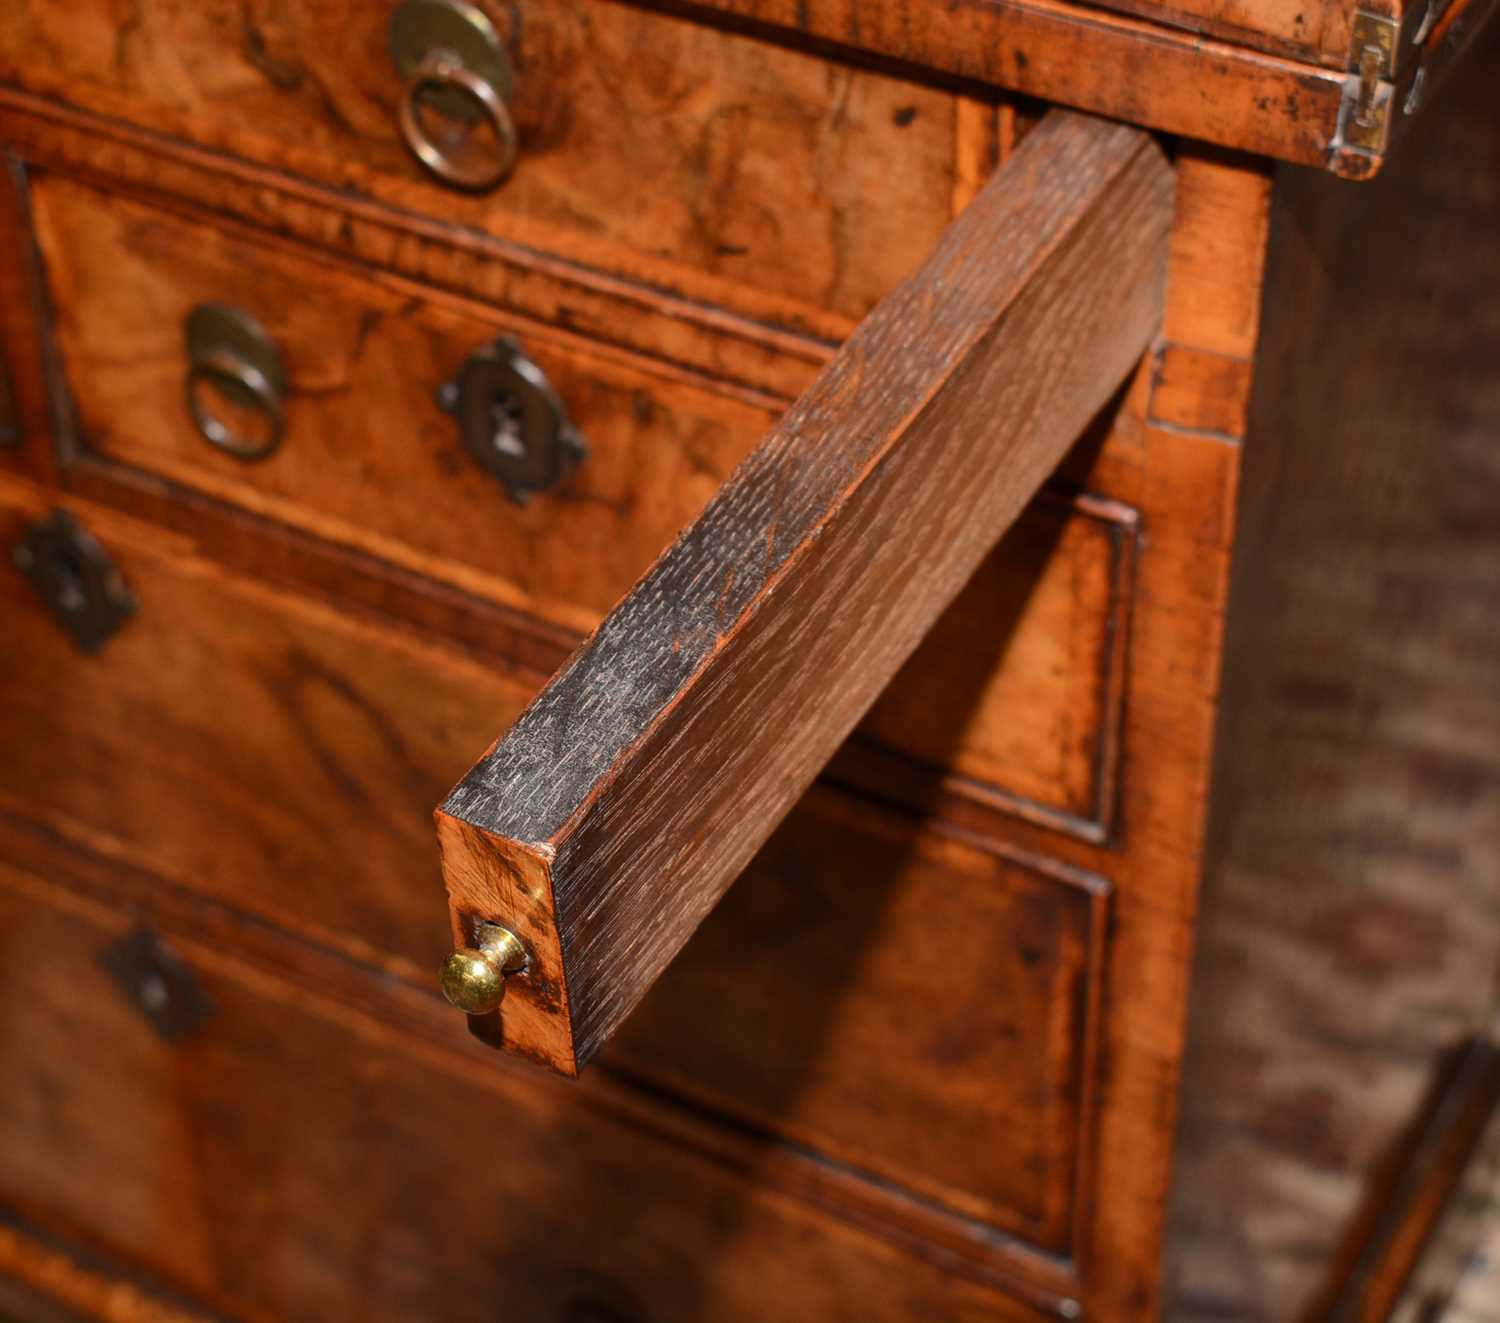 Early 18th Century walnut bachelors chest - Image 17 of 39